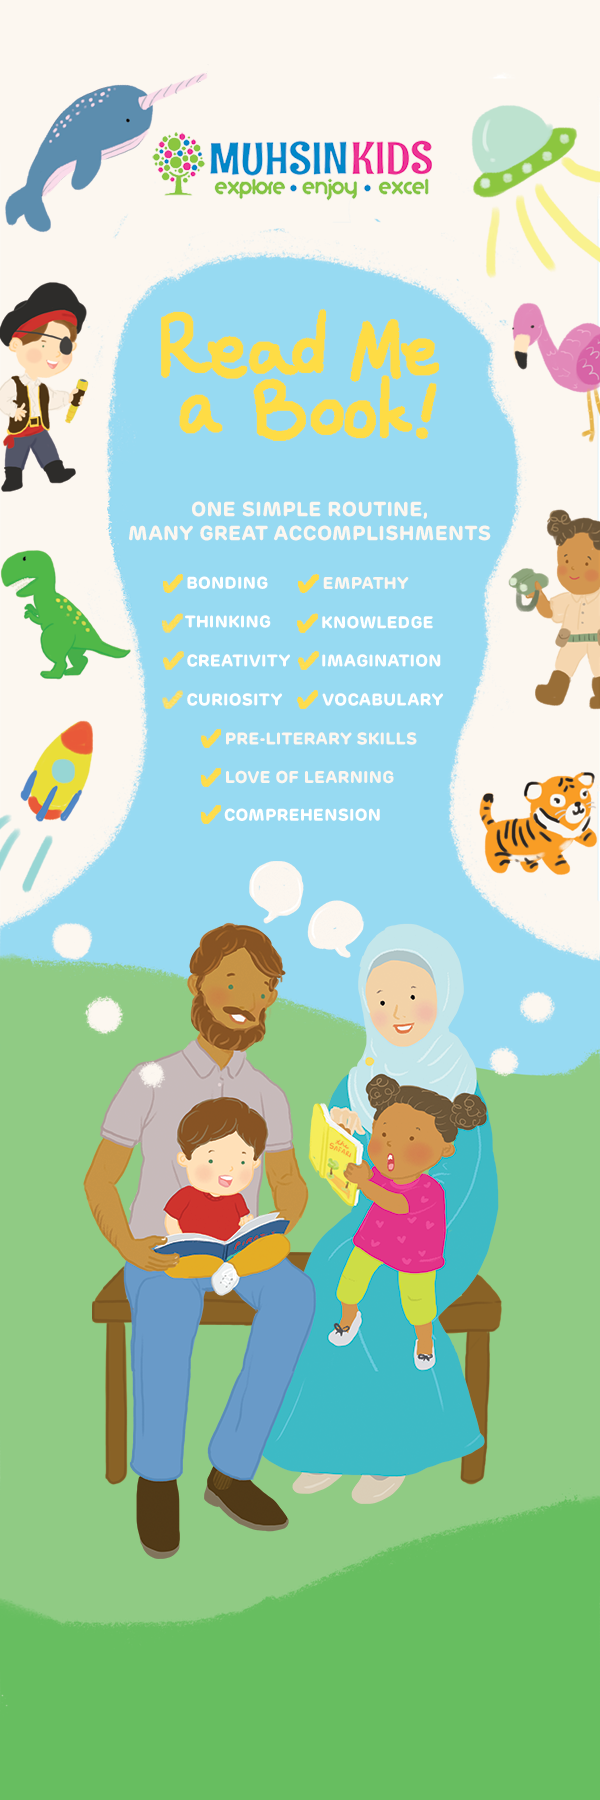 muhsinkids bookmark front (1).png